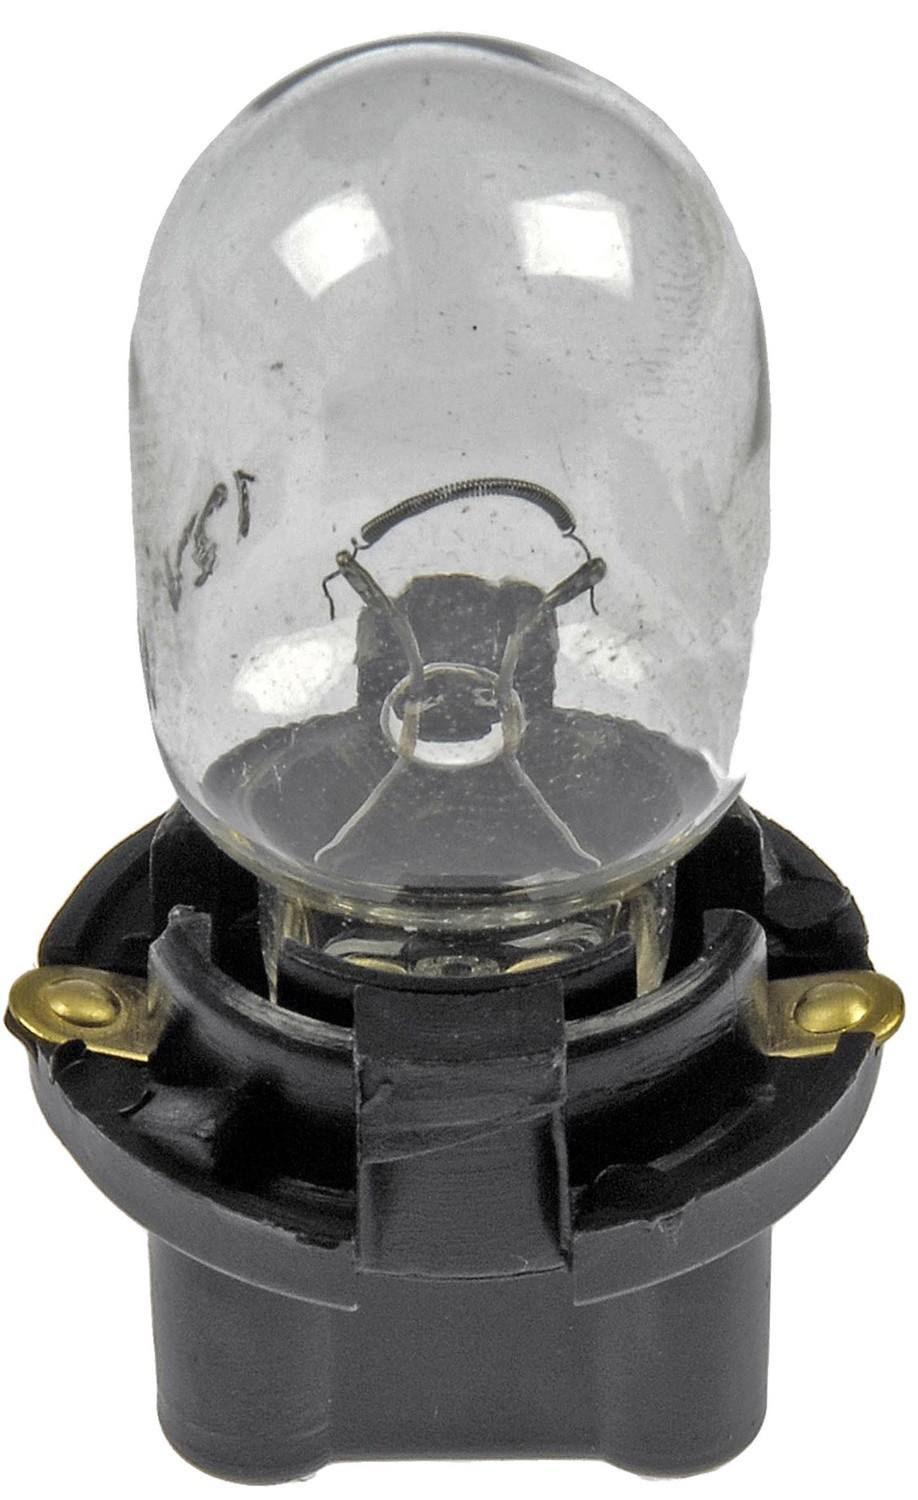 DORMAN OE SOLUTIONS - Multi Purpose Light Bulb - DRE 639-011